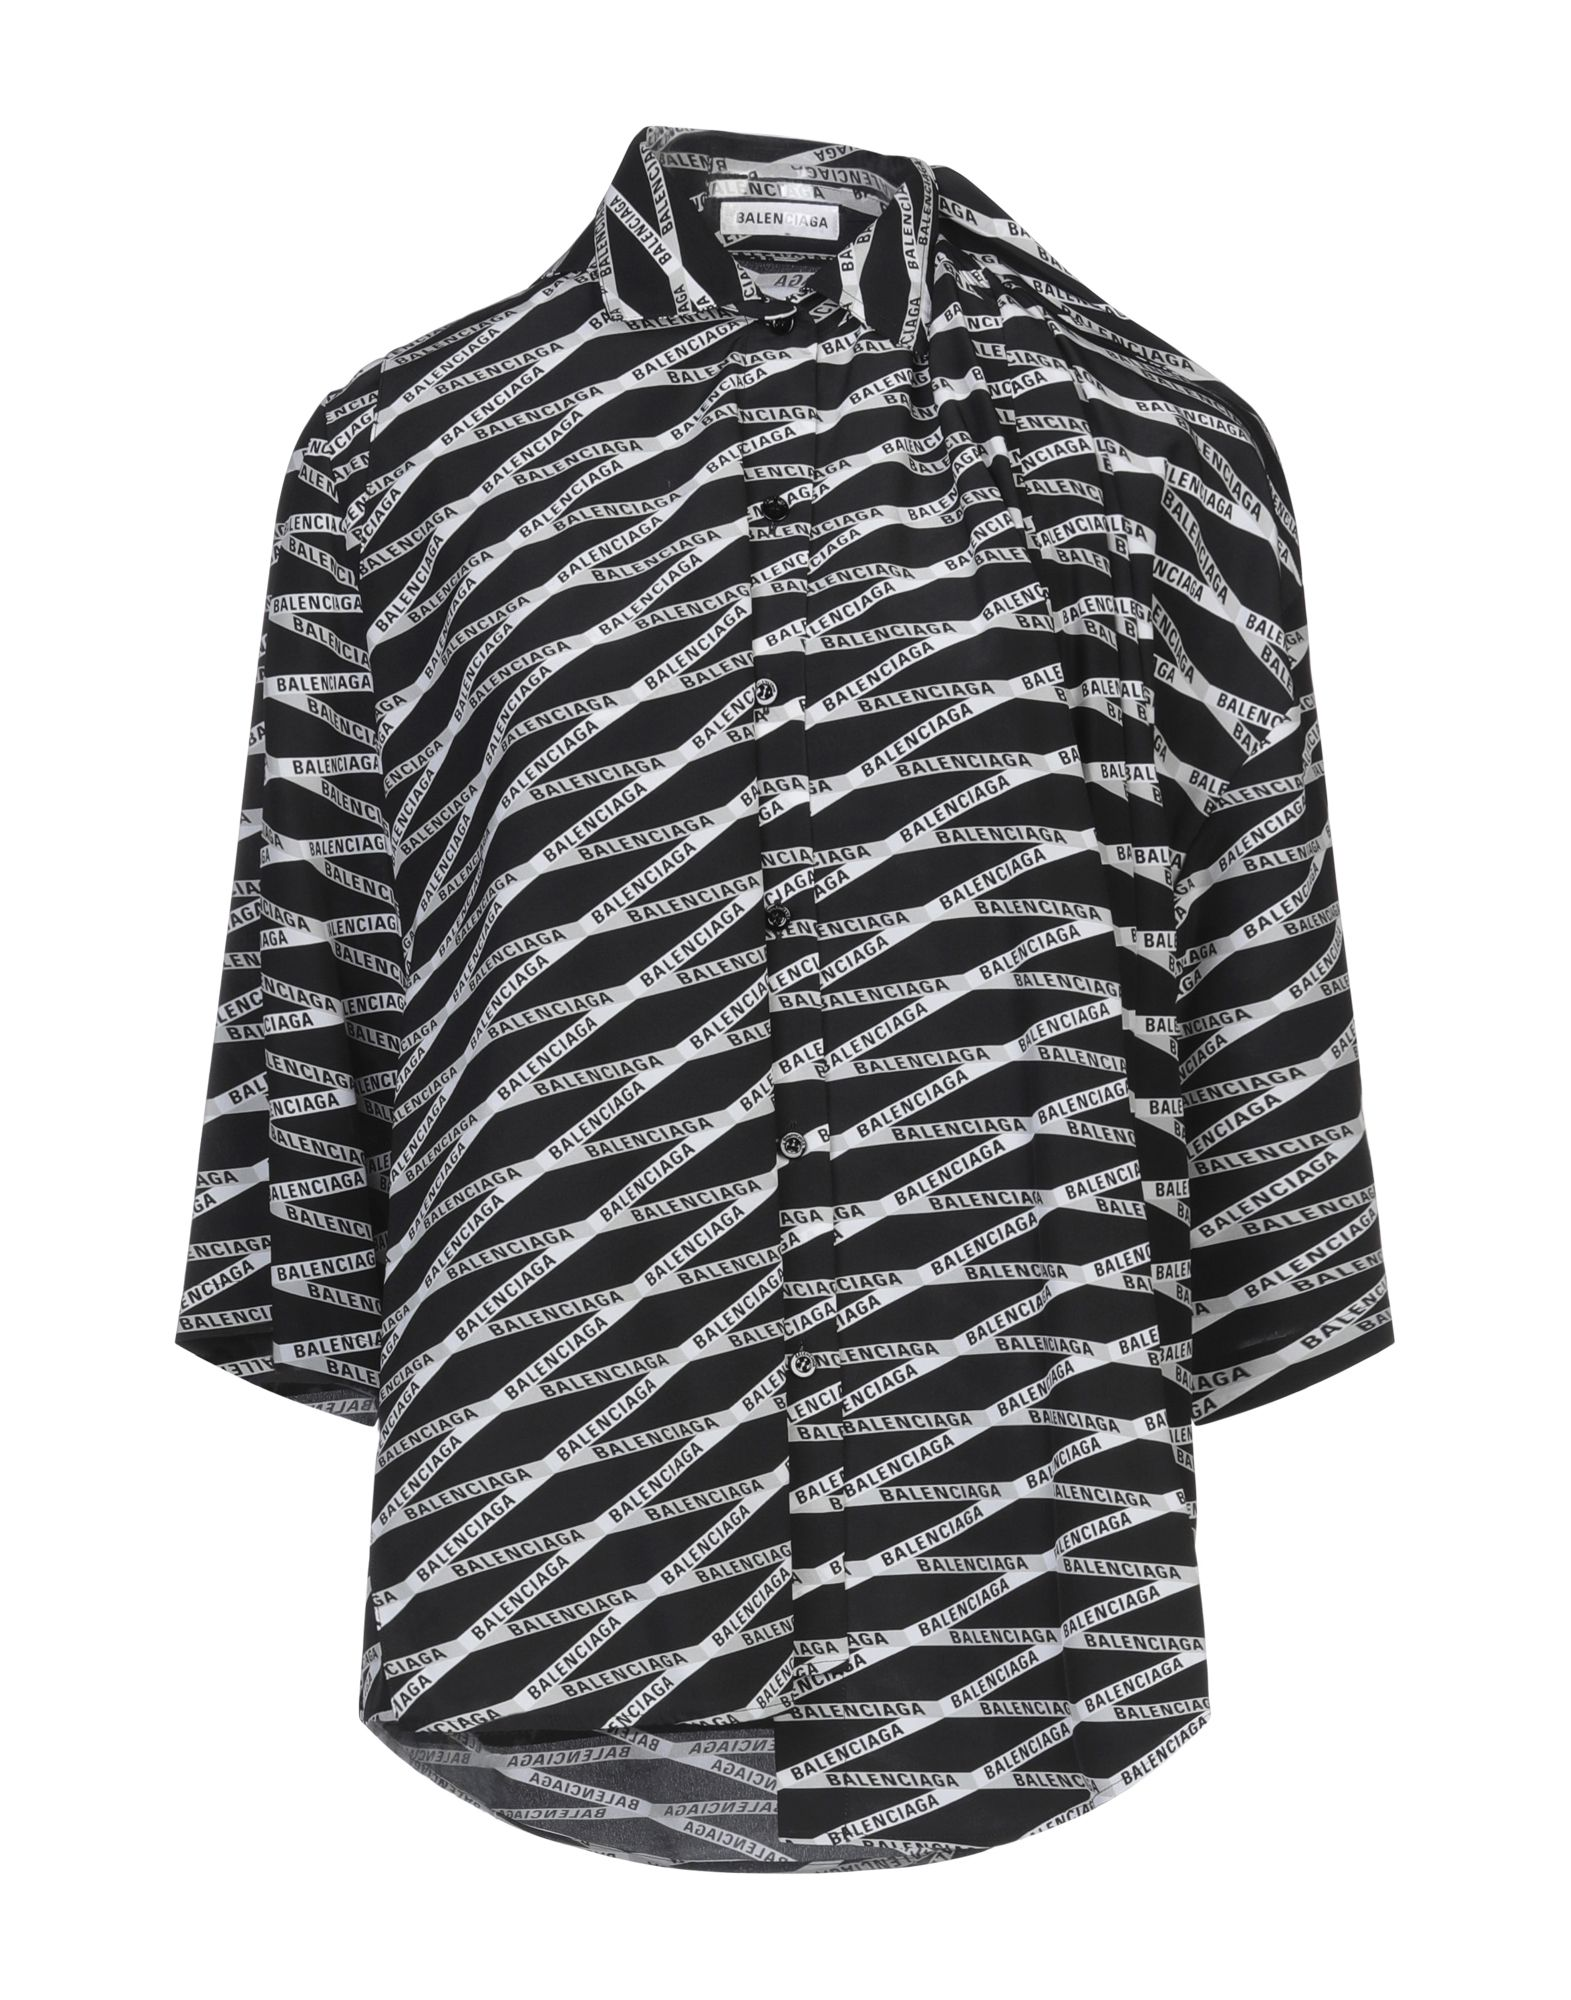 BALENCIAGA Shirts - Item 38870813